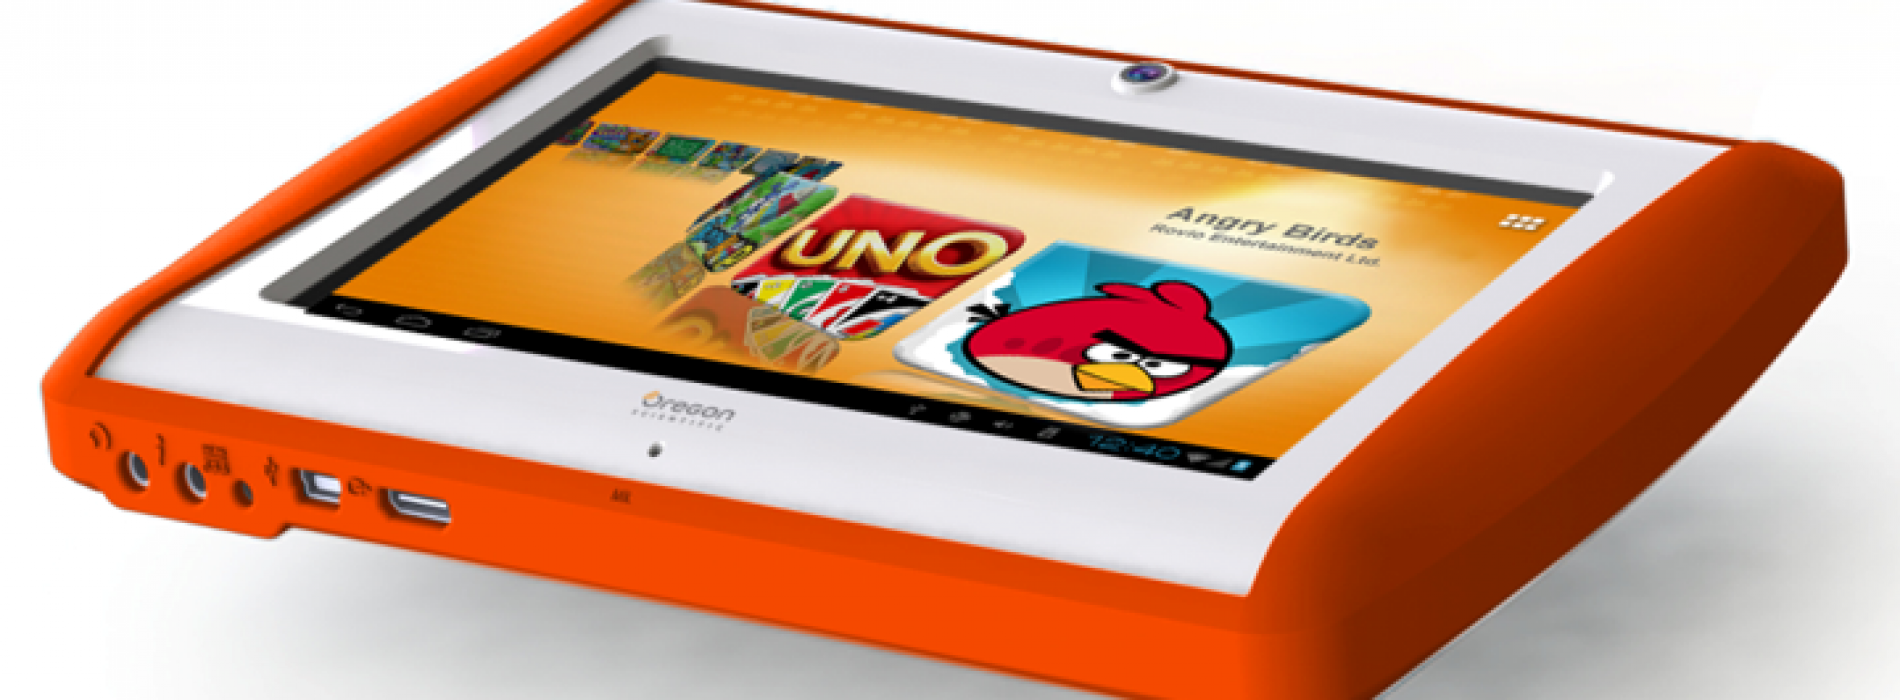 Oregon Scientific debuts $150 MEEP! Tablet for kids